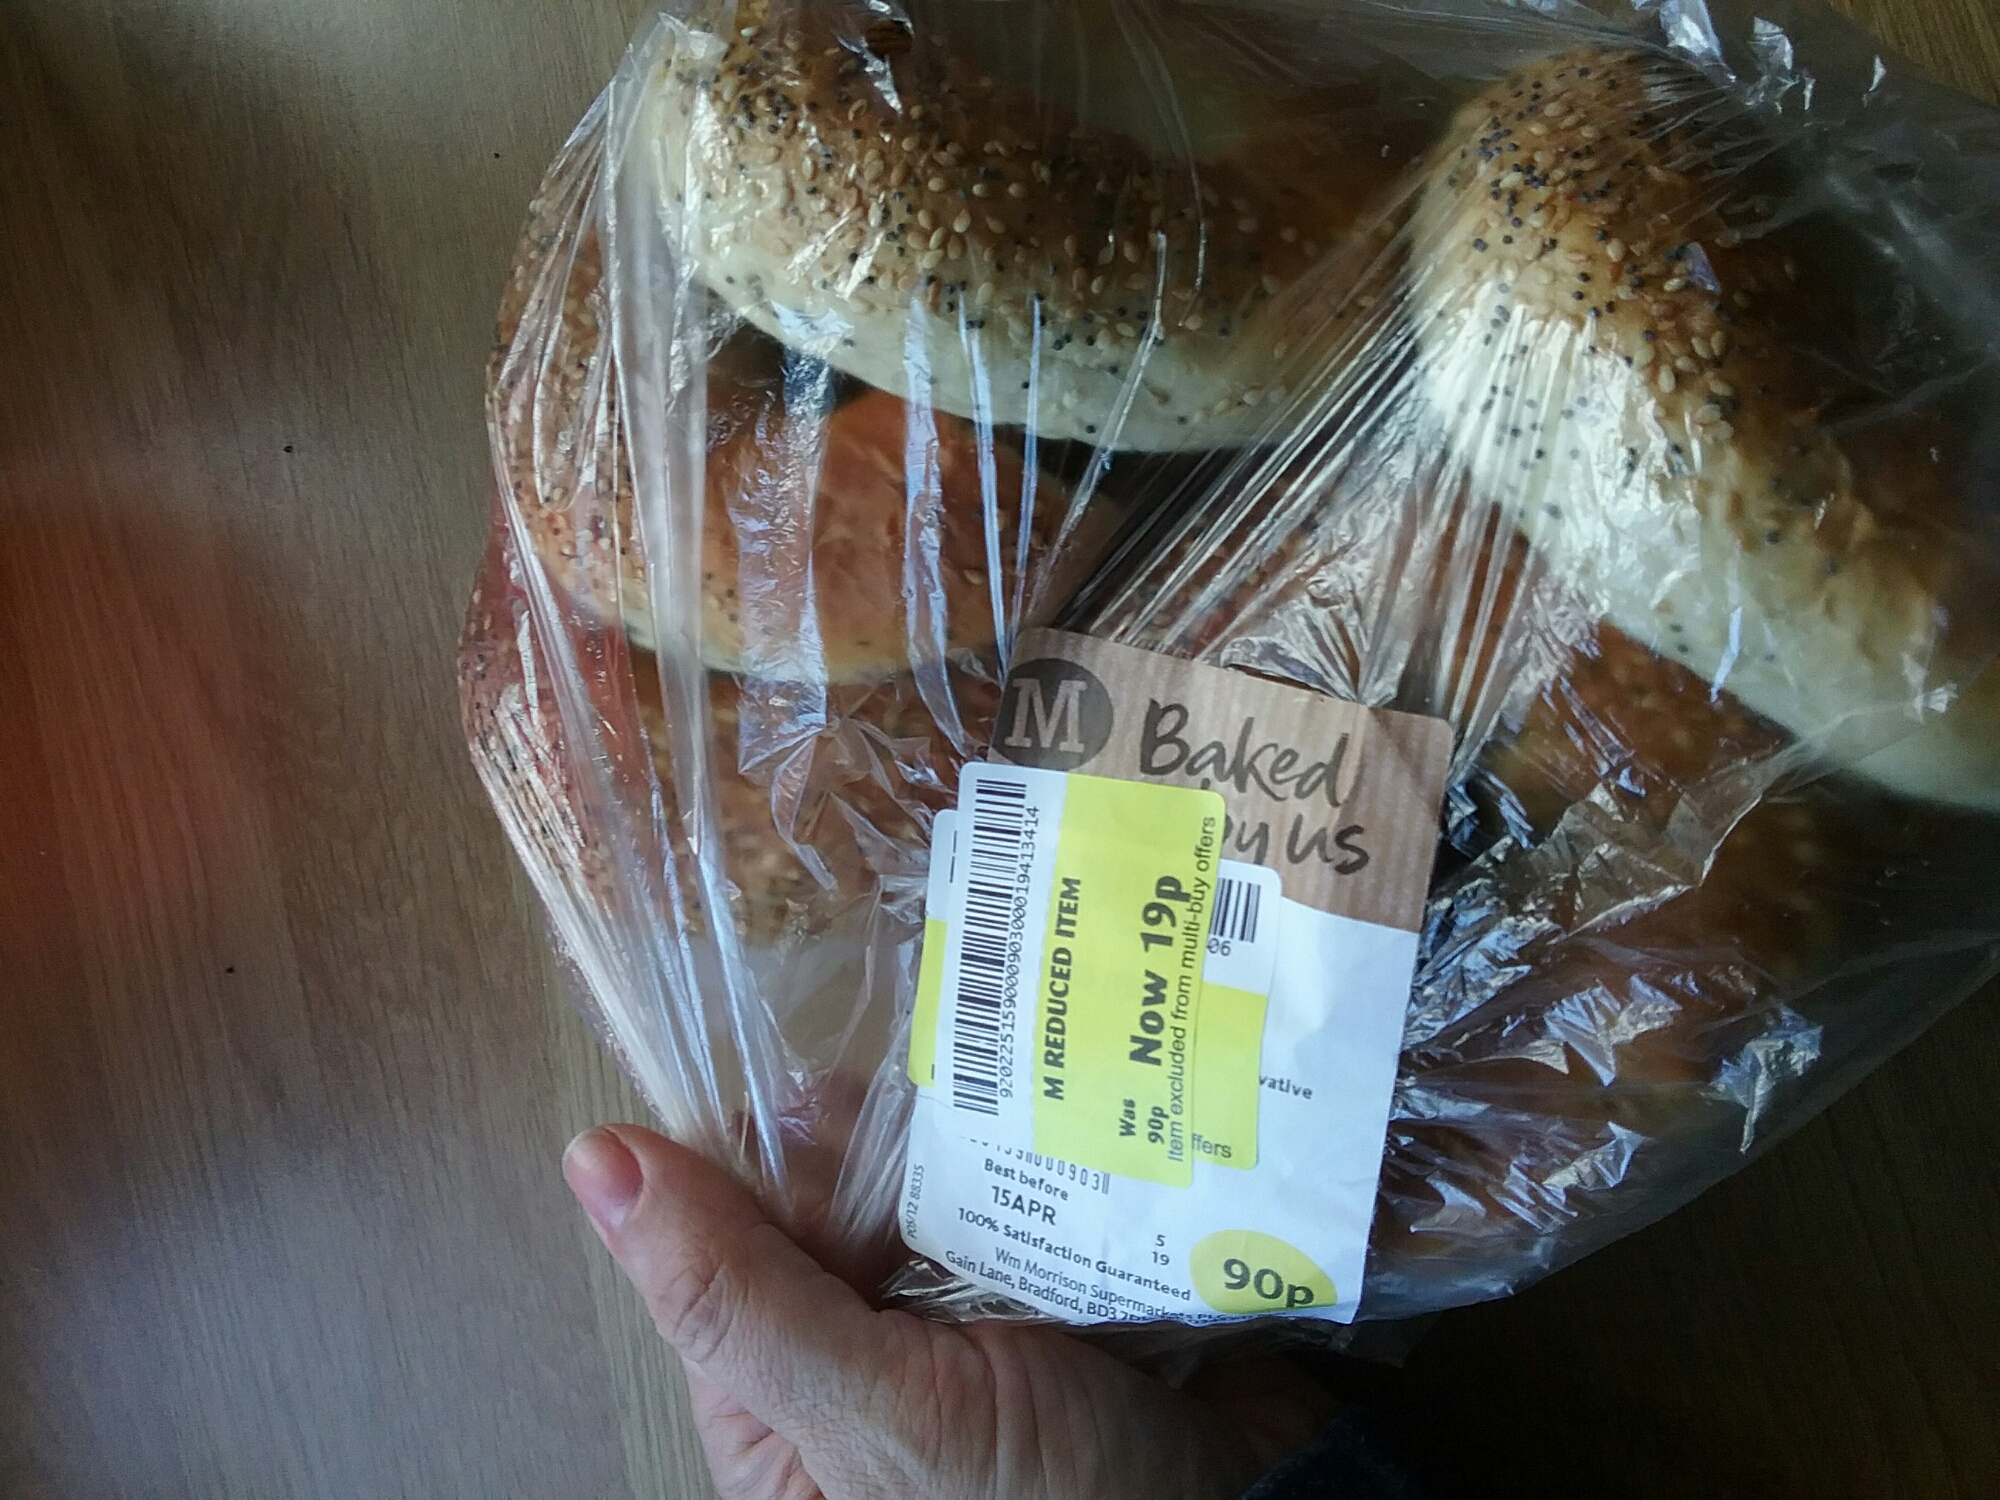 Morrisons bagels in a plastic bag with yellow tag on them 19p